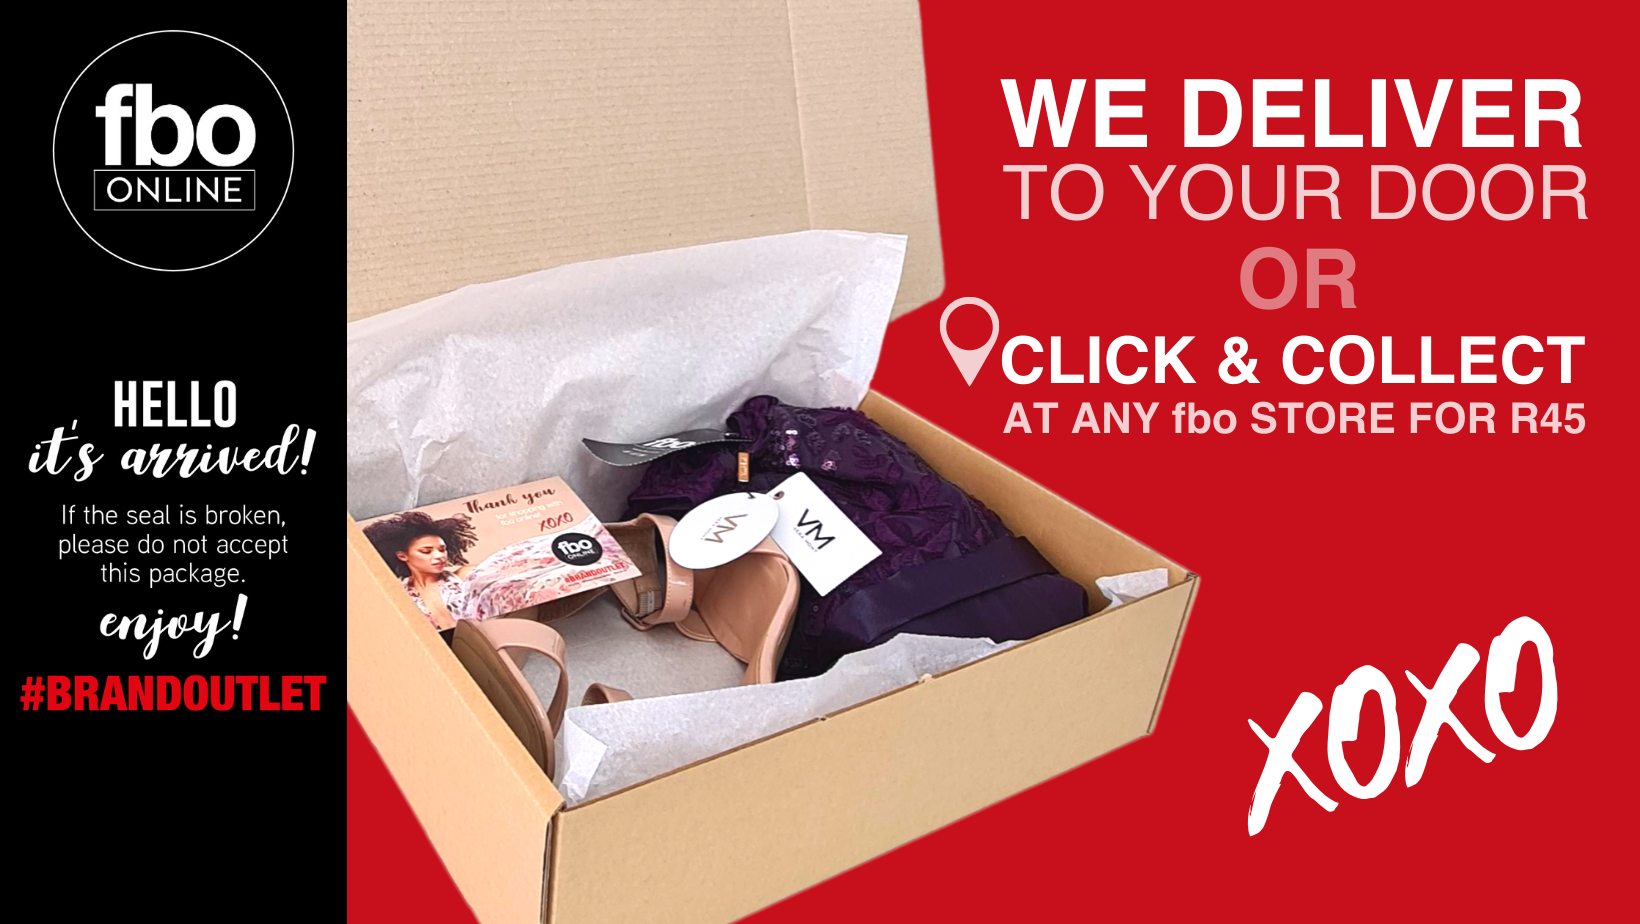 fbo online order delivery with fashion garments in the box. fbo offers click and collect at R45. Delivery nationwide to anywhere in South Africa